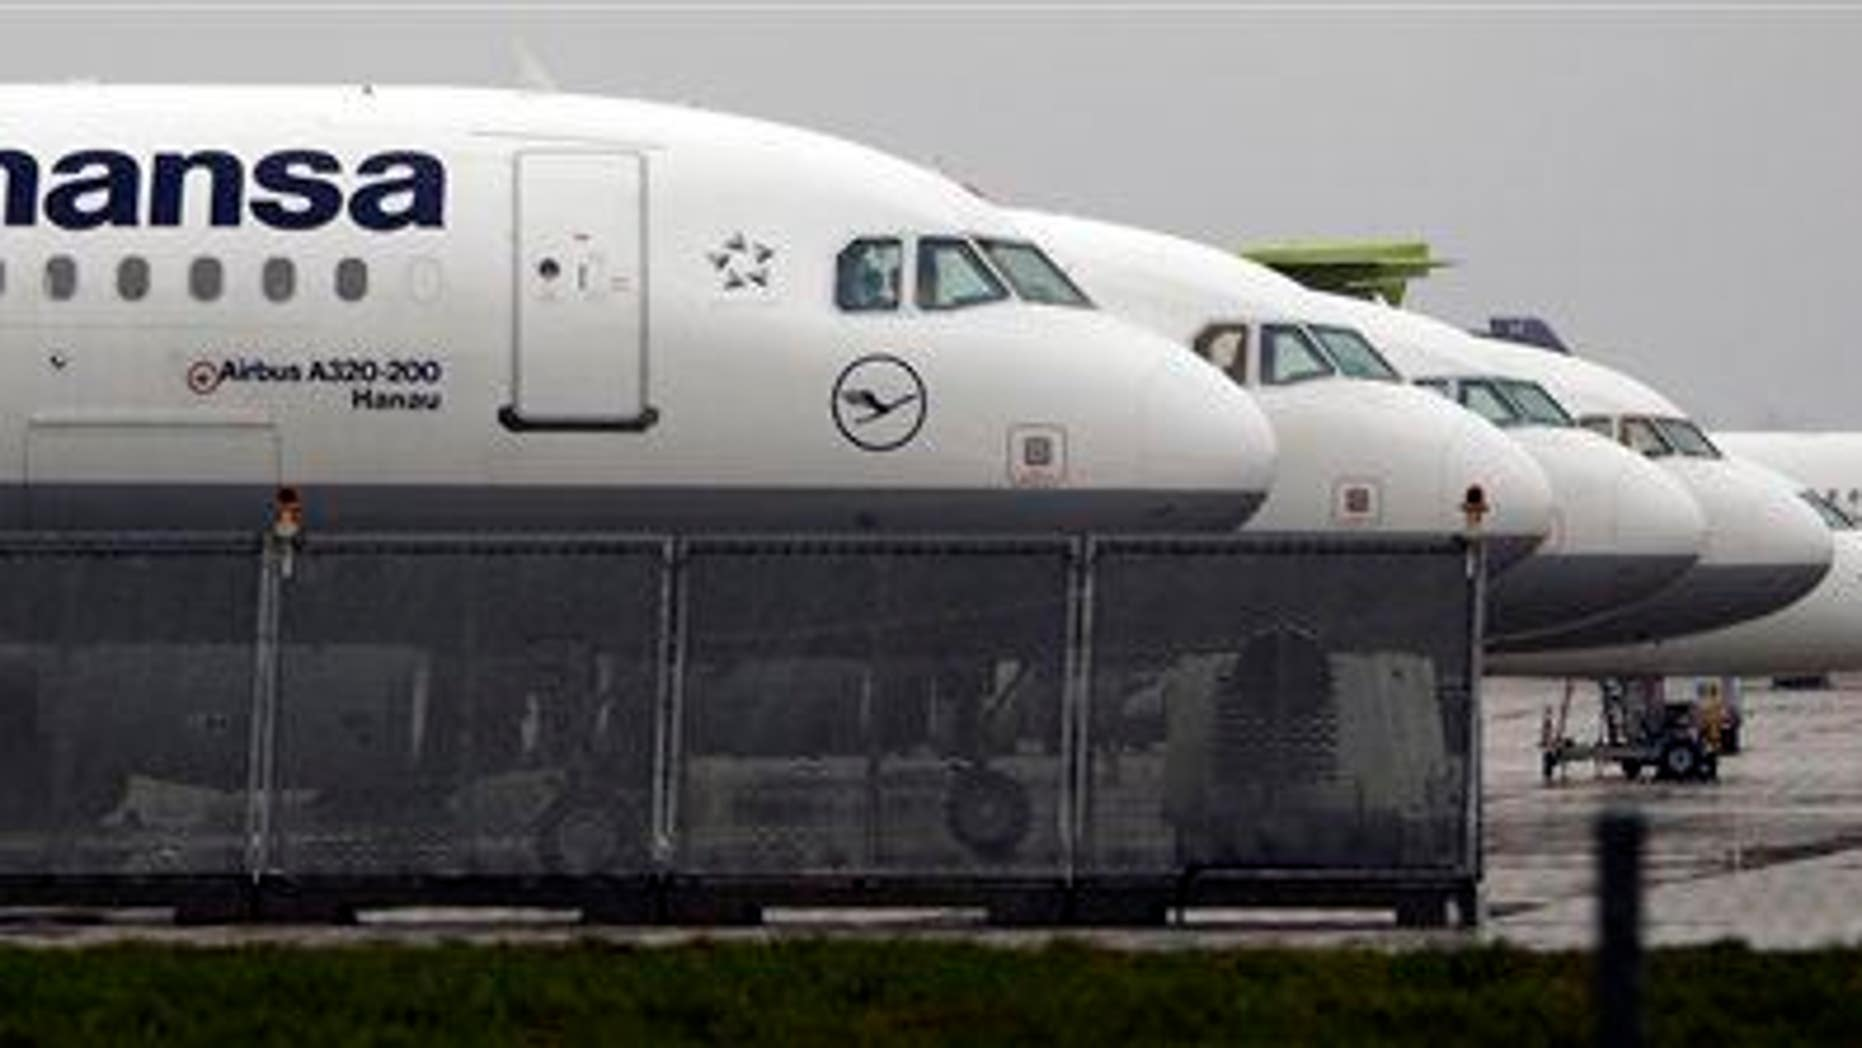 Lufthansa planes are parked at the airport at the airport in Munich, southern Germany.